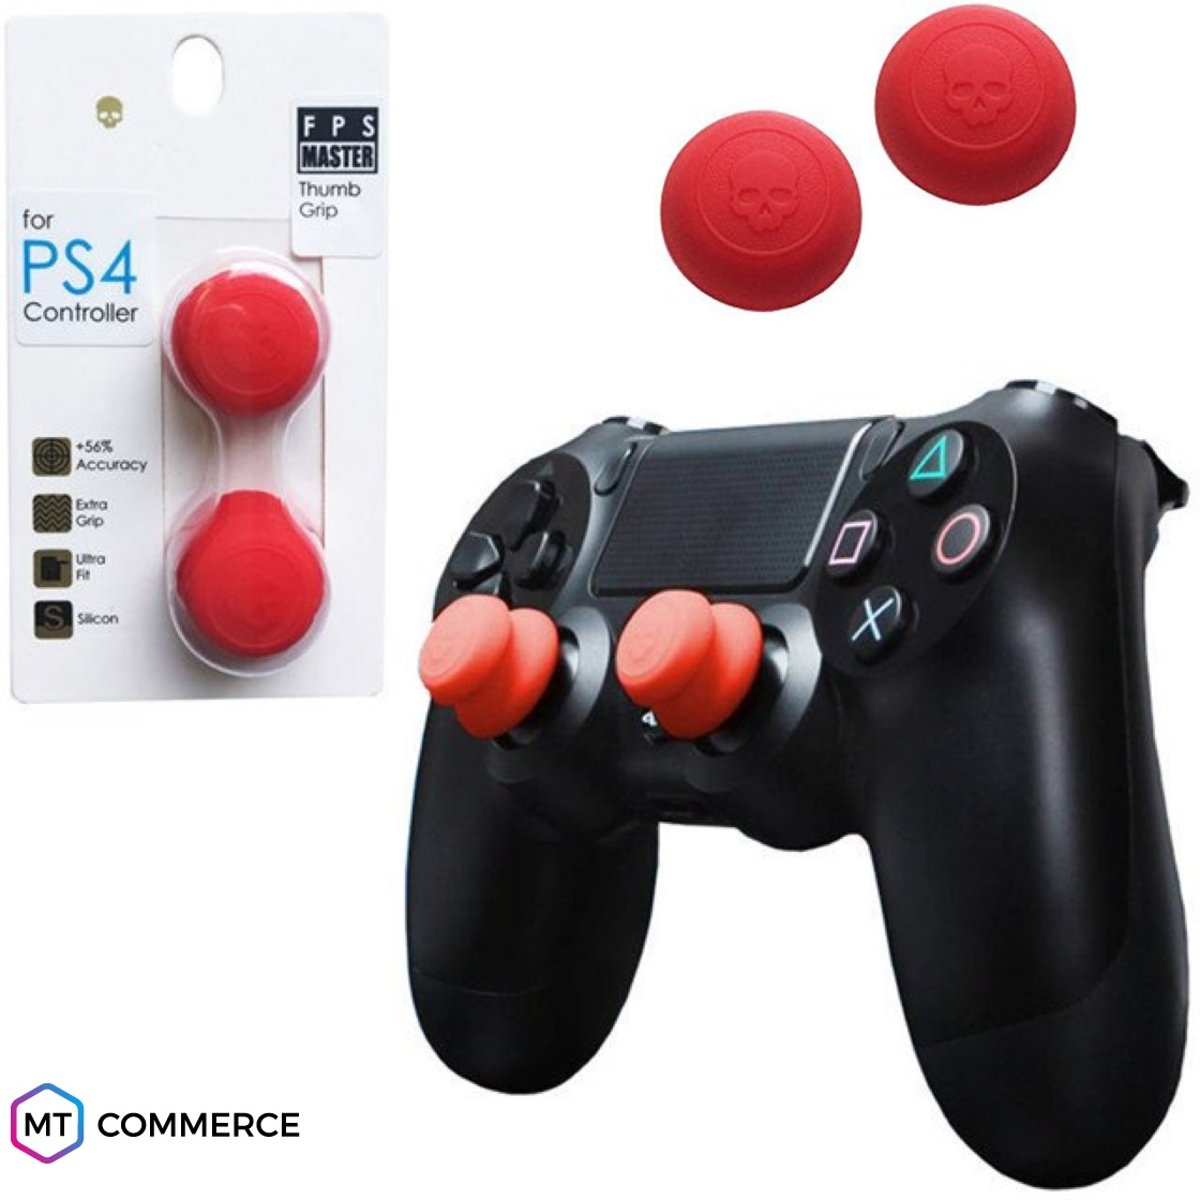 FPS Master thumbsticks voor PS4 - PlayStation Controller Thumb Grips - Rood